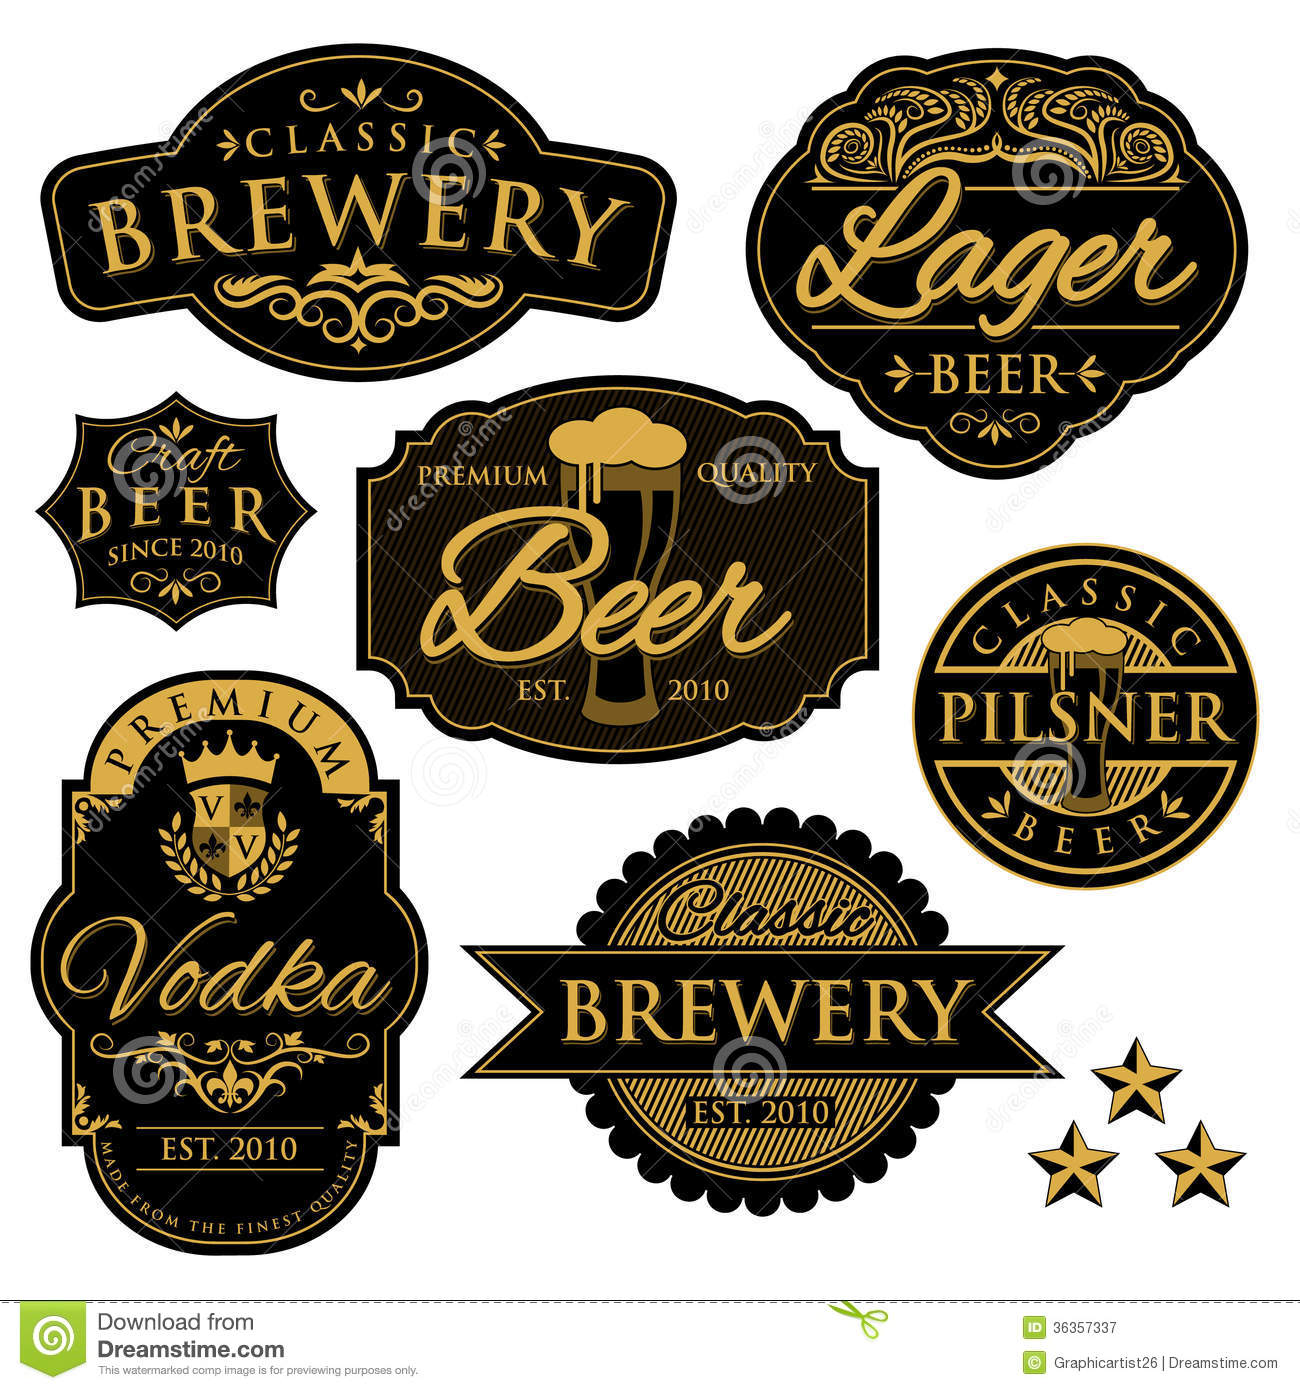 Vintage Brewery Labels Royalty Free Stock Photography   Image